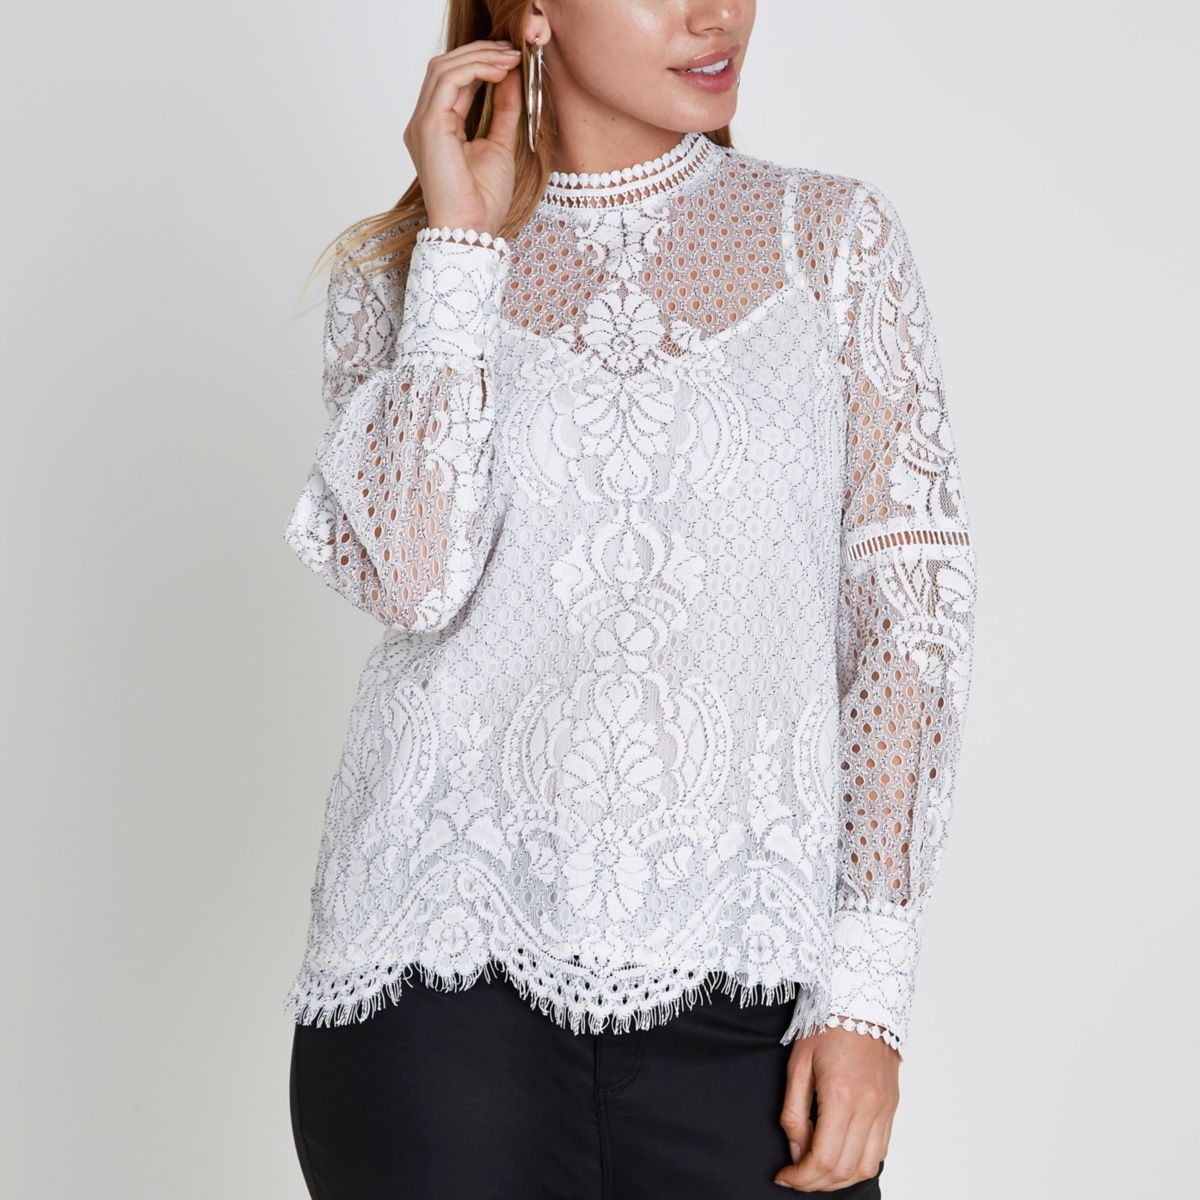 Buy Hot Sale! Women's Off Shoulder Tops Ladies Long Sleeve Casual Lace Blouse Solid Color T-Shirt Tops Shirt and other Blouses & Button-Down Shirts at mnogodva.gq Our wide selection is elegible for free shipping and free returns/5(25).